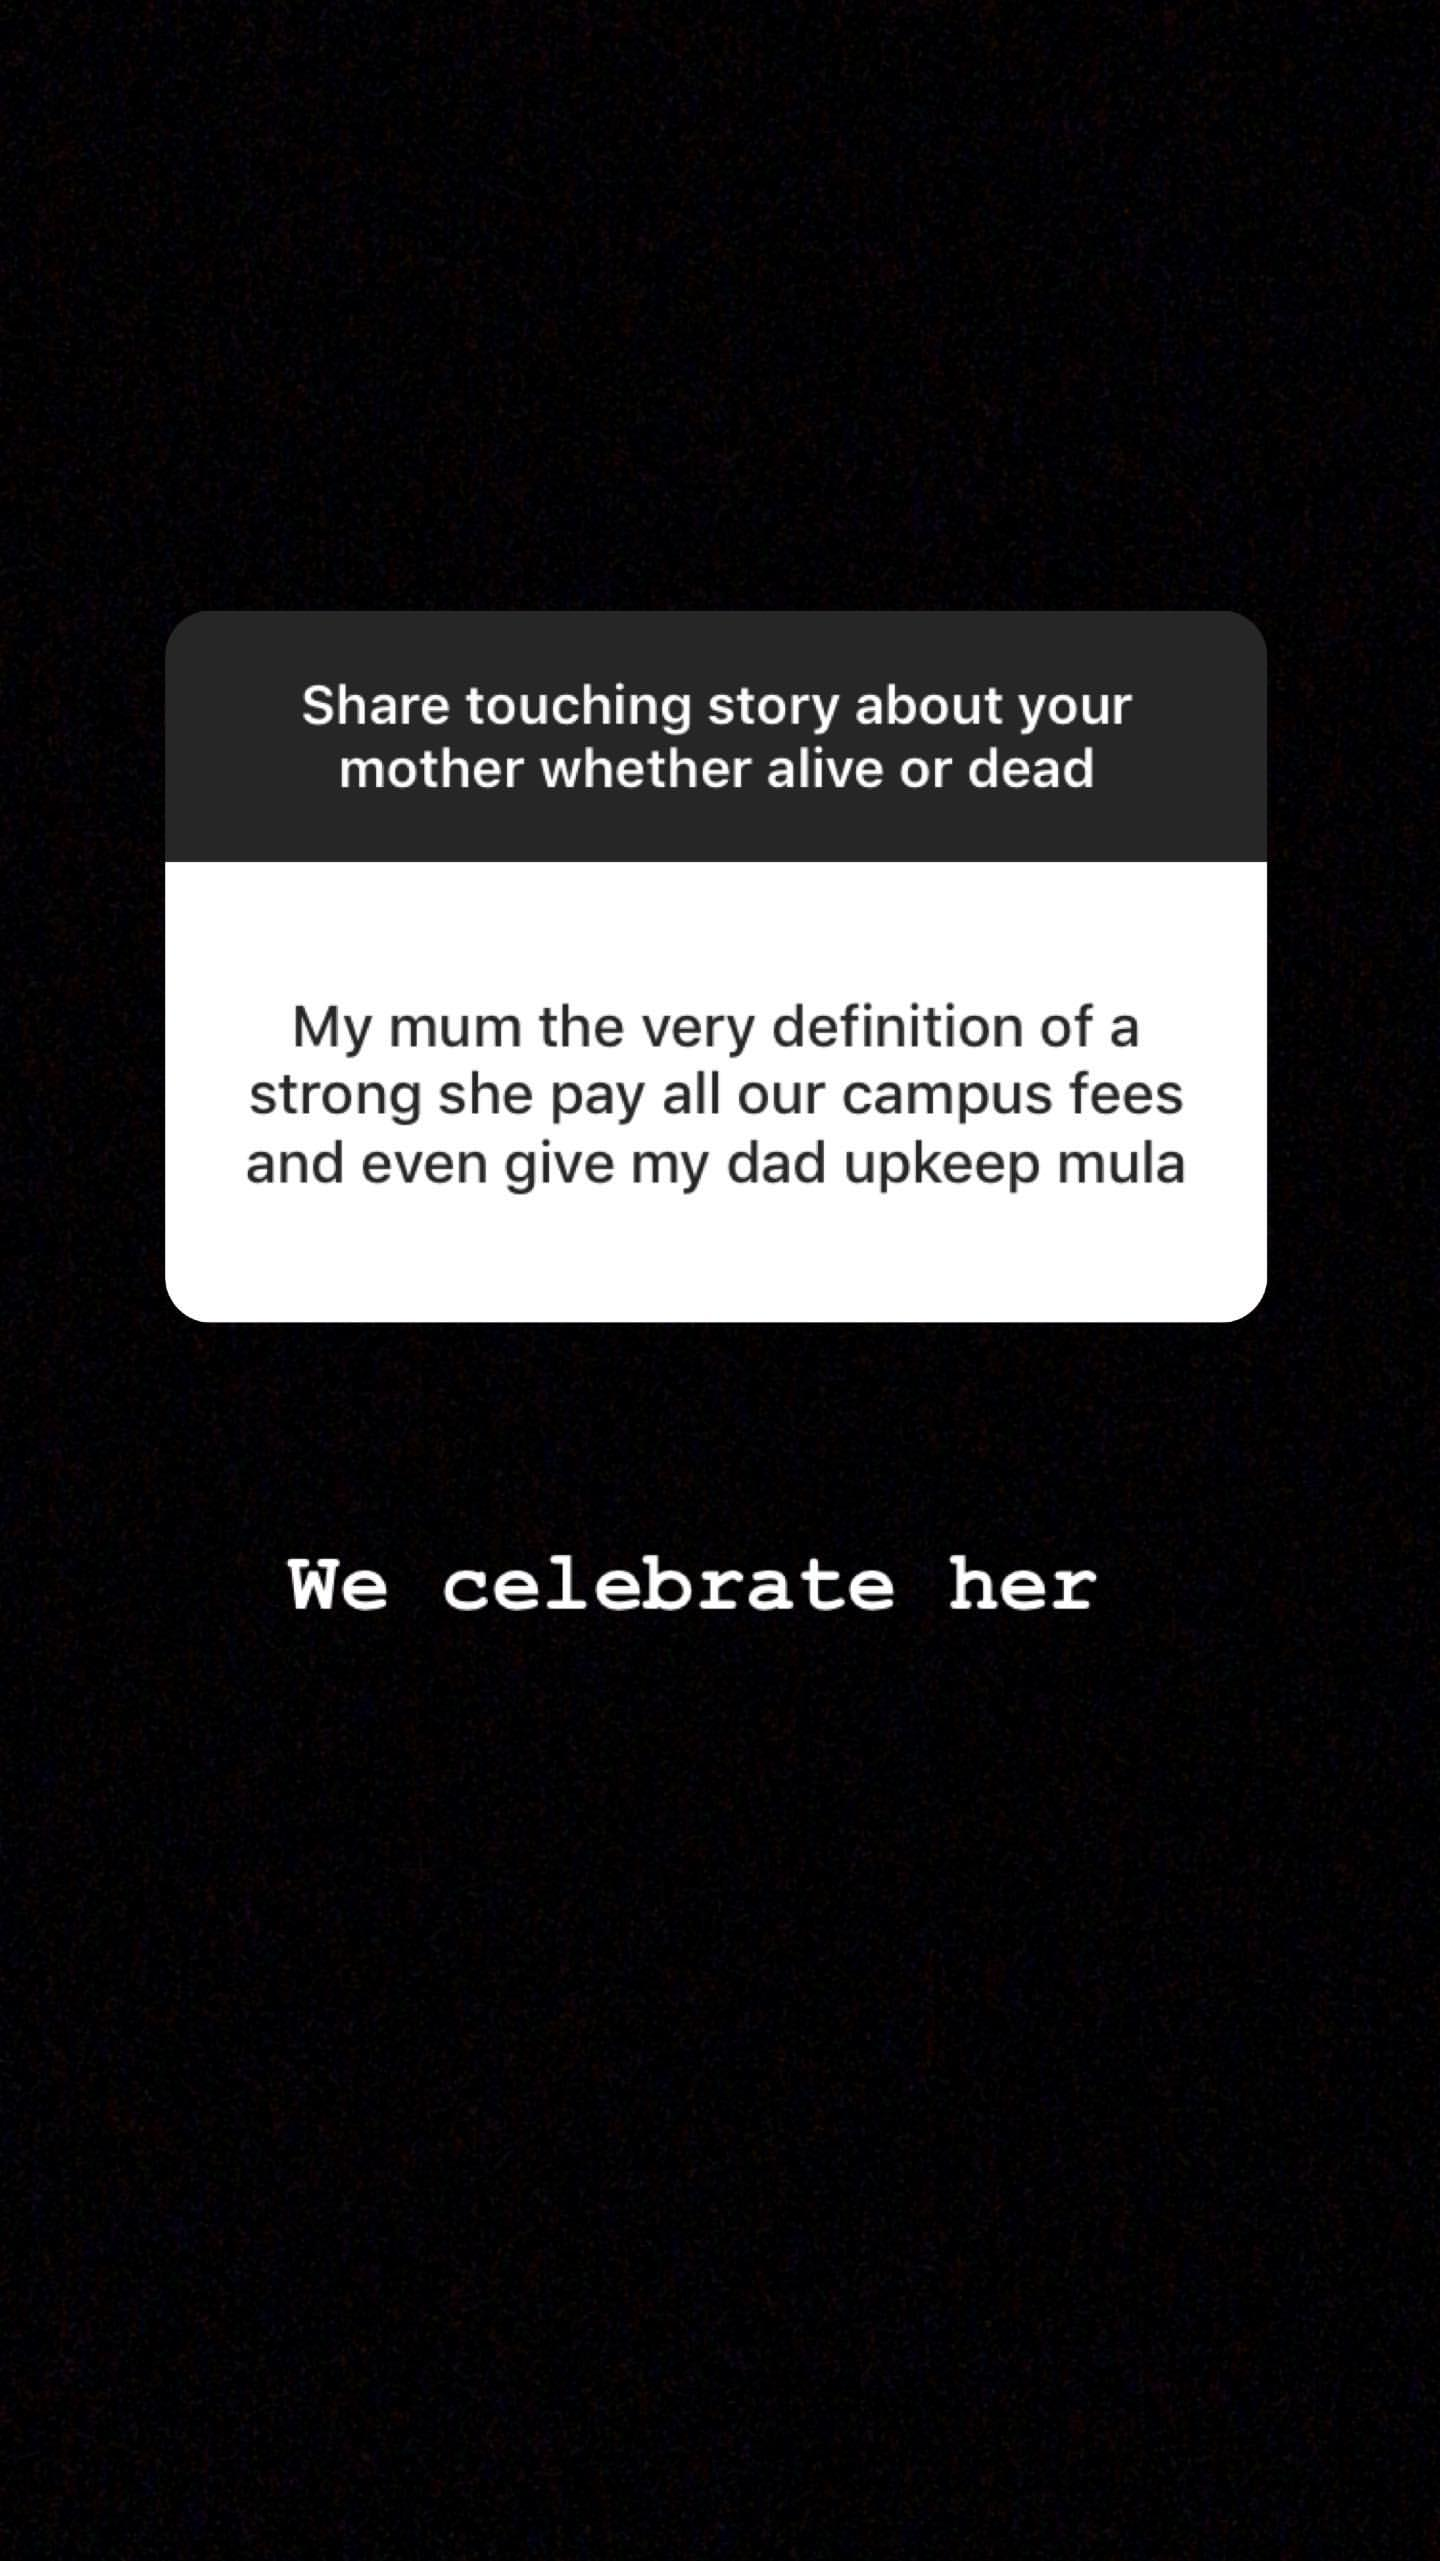 59335092 349157965958530 3284201239733778094 n - Tear-jerking! Mpasho fans break down sharing touching stories about their mothers